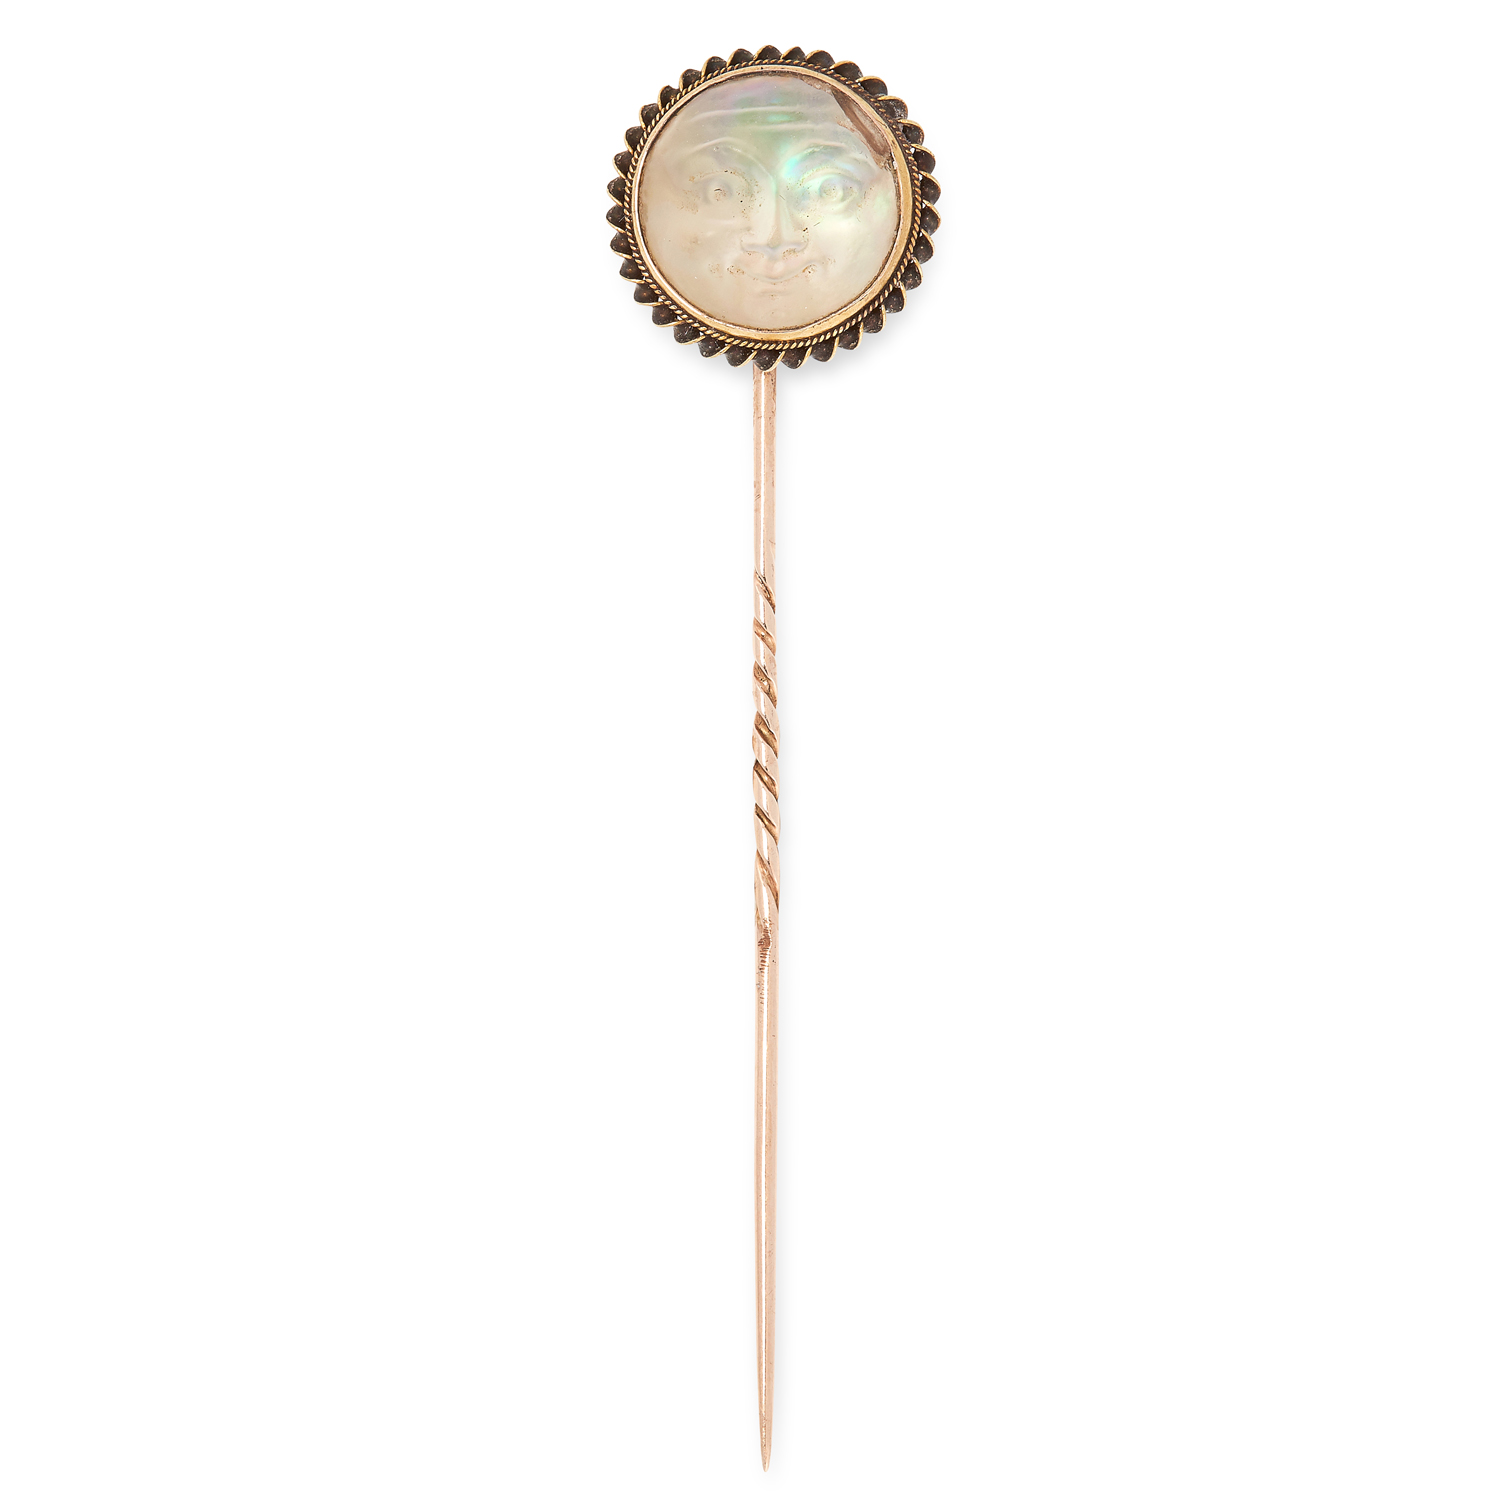 AN ANTIQUE MAN IN THE MOON RAINBOW MOONSTONE TIE PIN in yellow gold and gilt metal, set with a